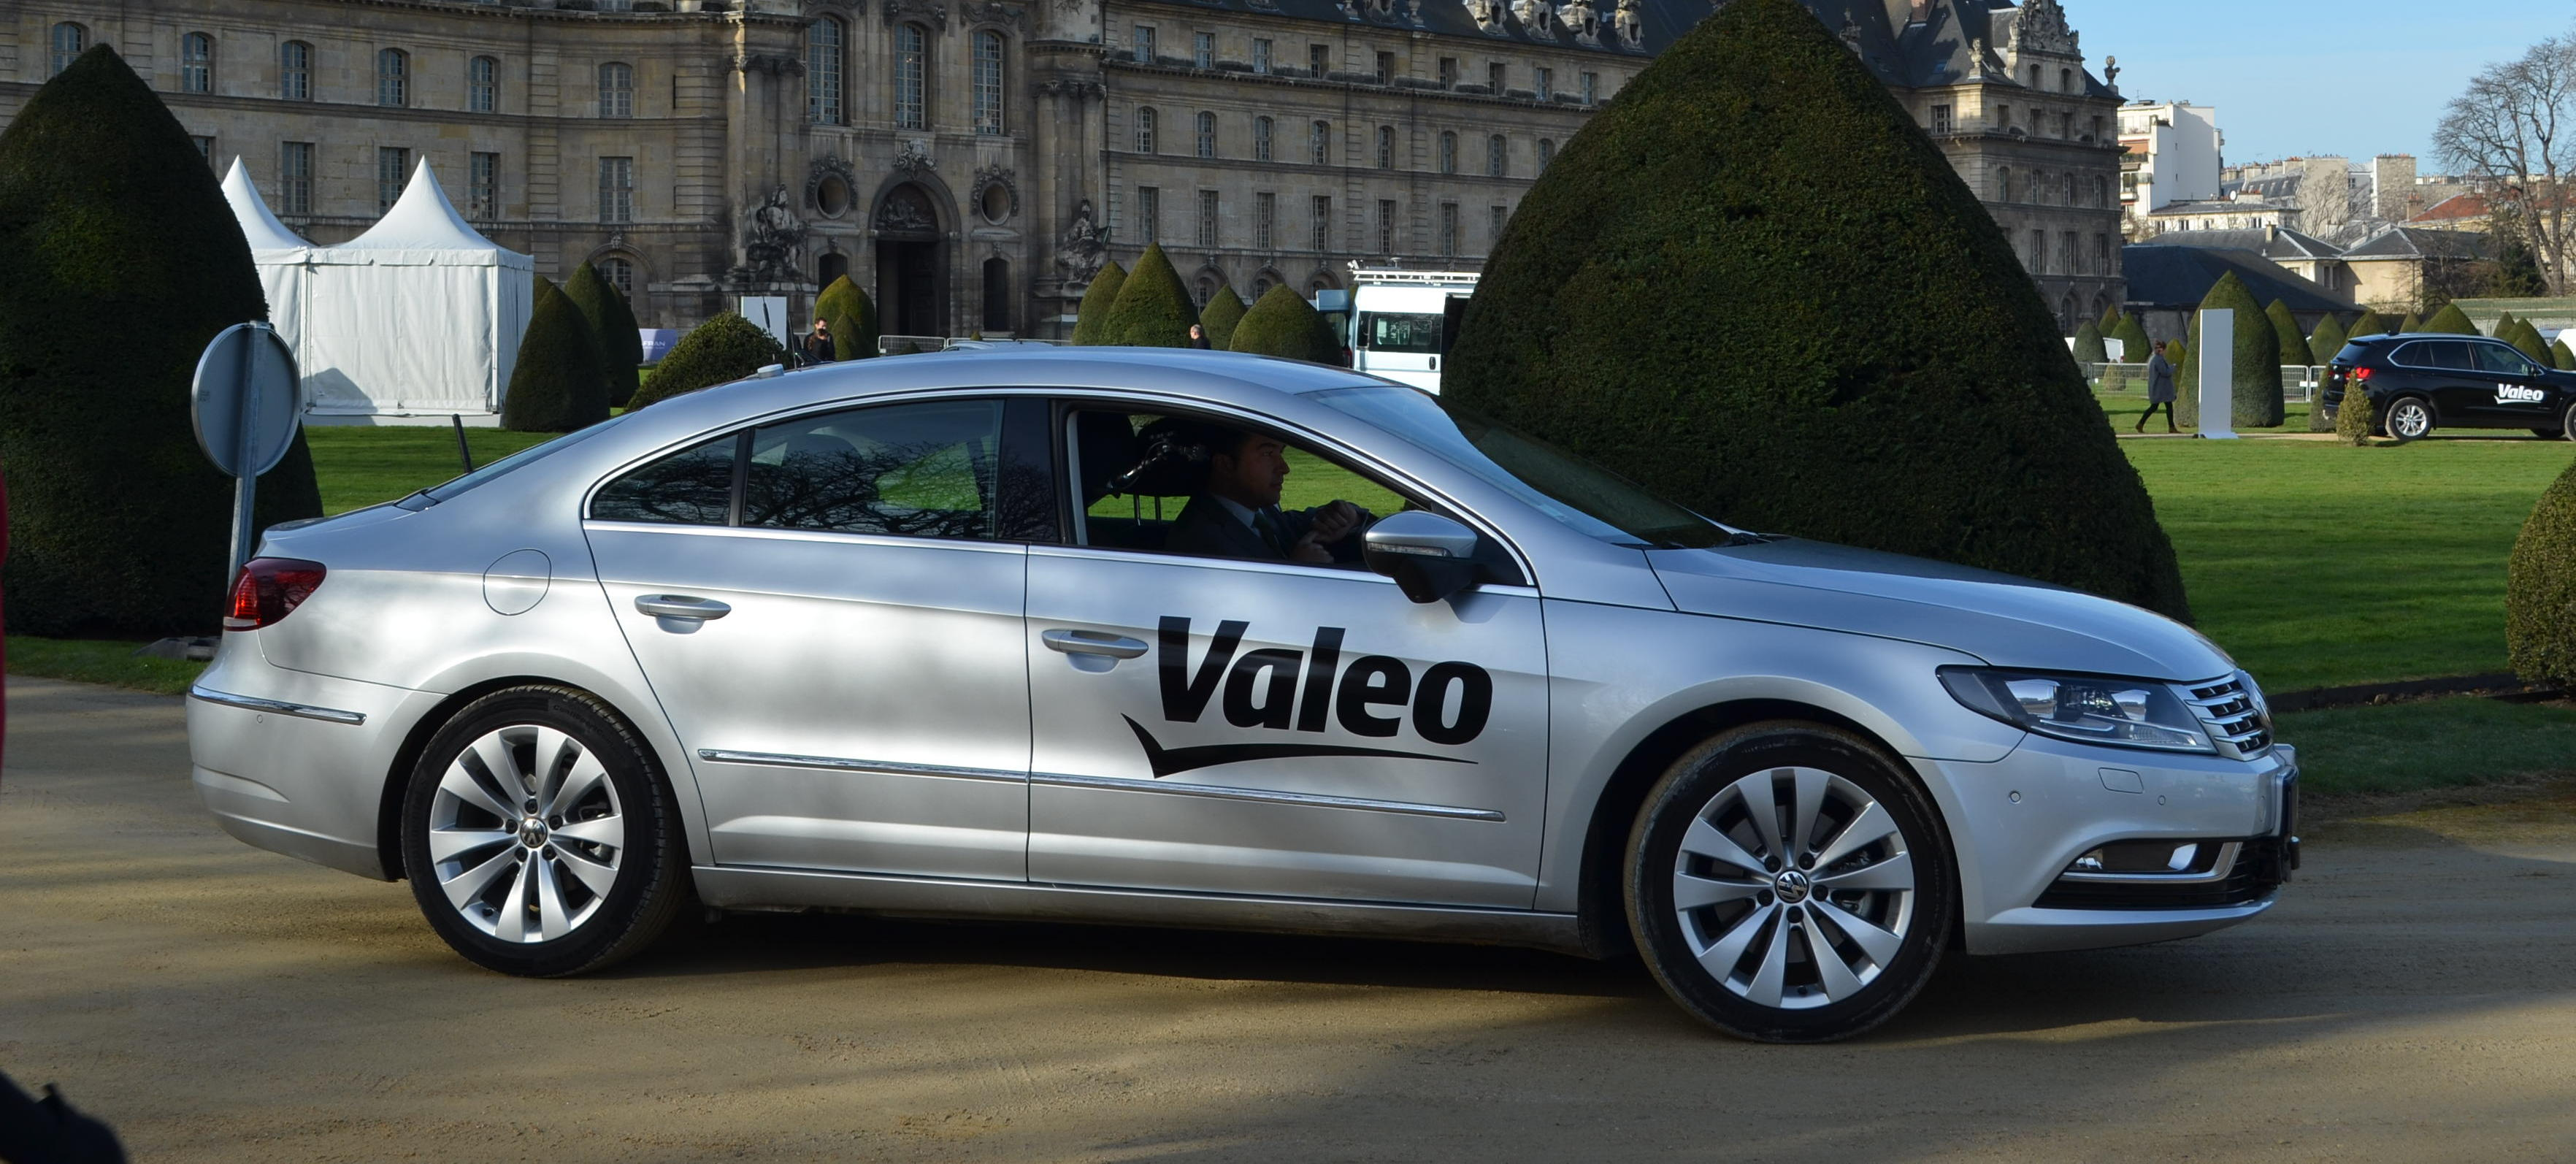 Indian team selected for Valeo Innovation Challenge